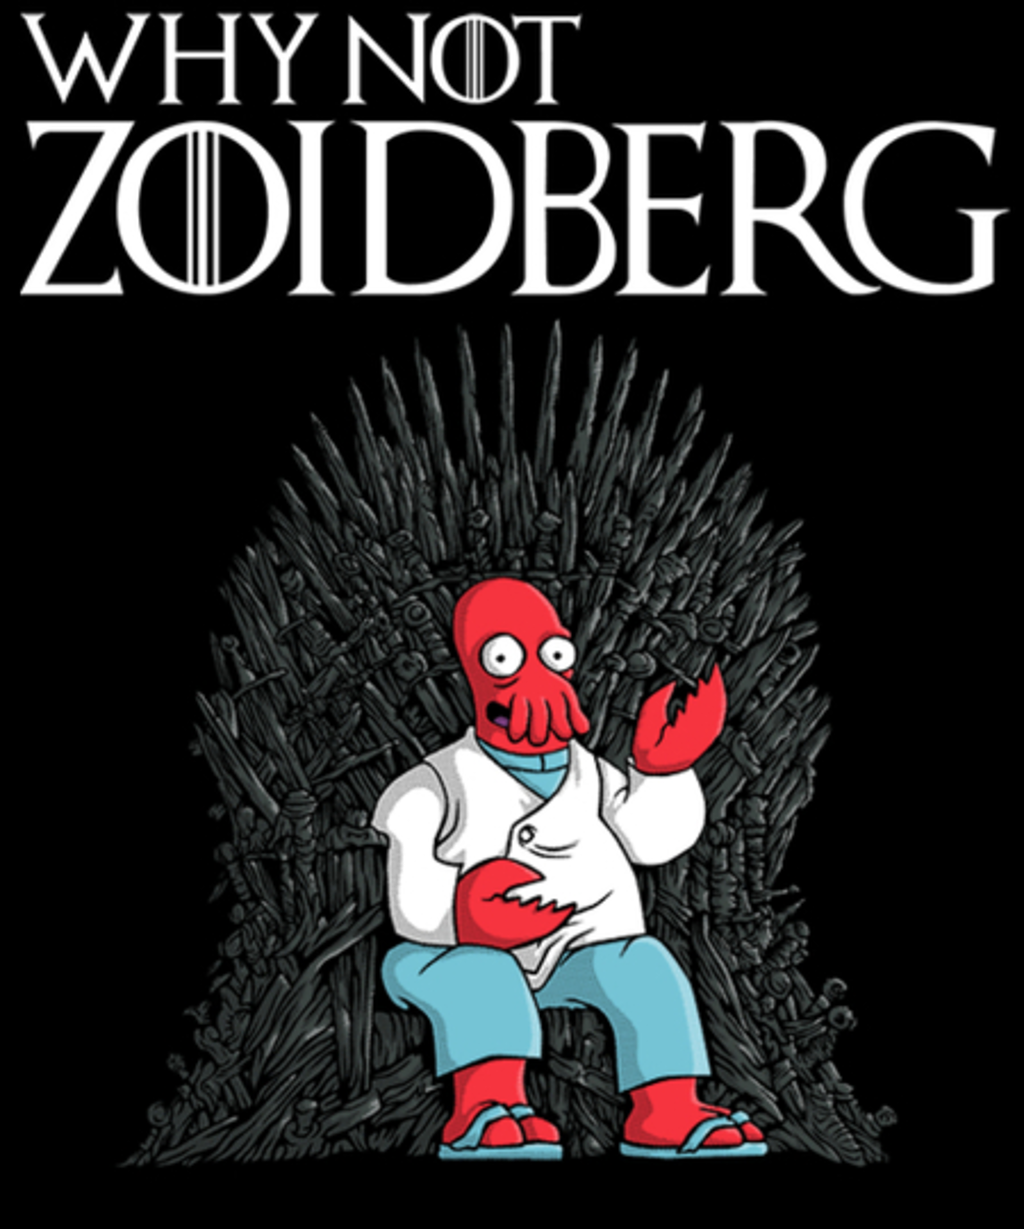 Qwertee: Why not Zoidberg?